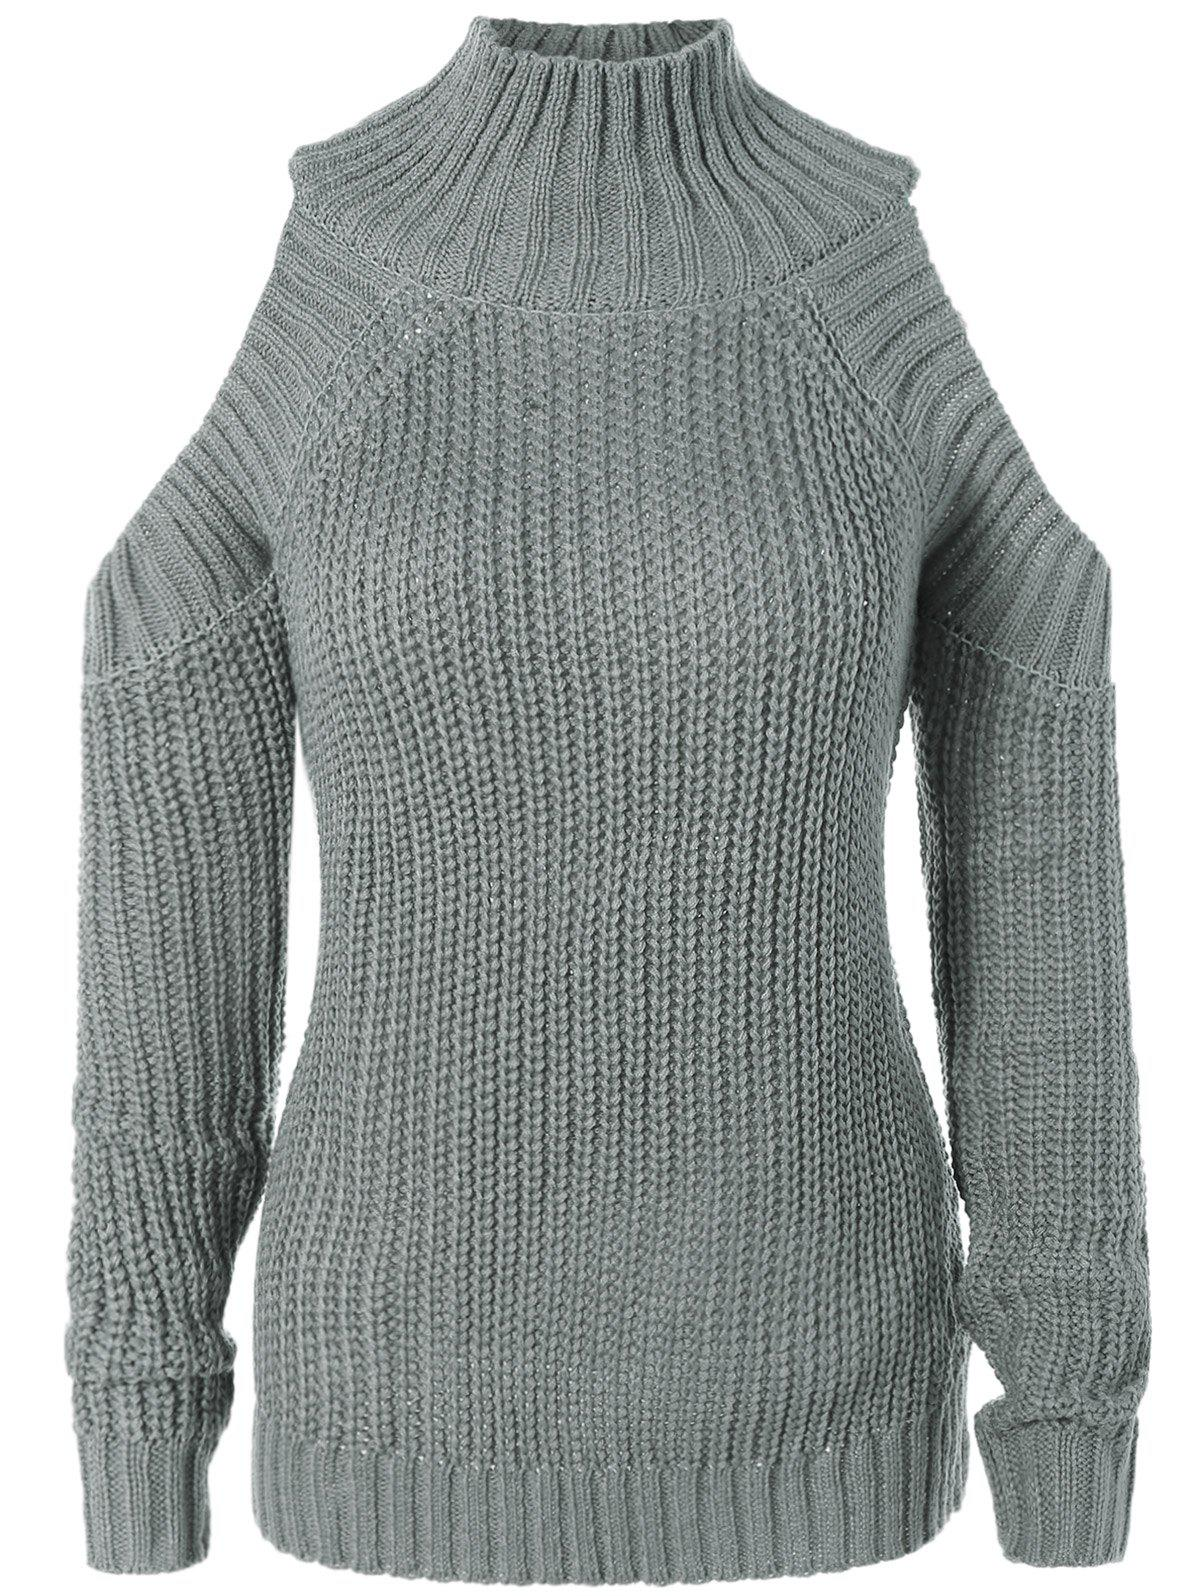 Cut Out Chunky Sweater - GRAY ONE SIZE